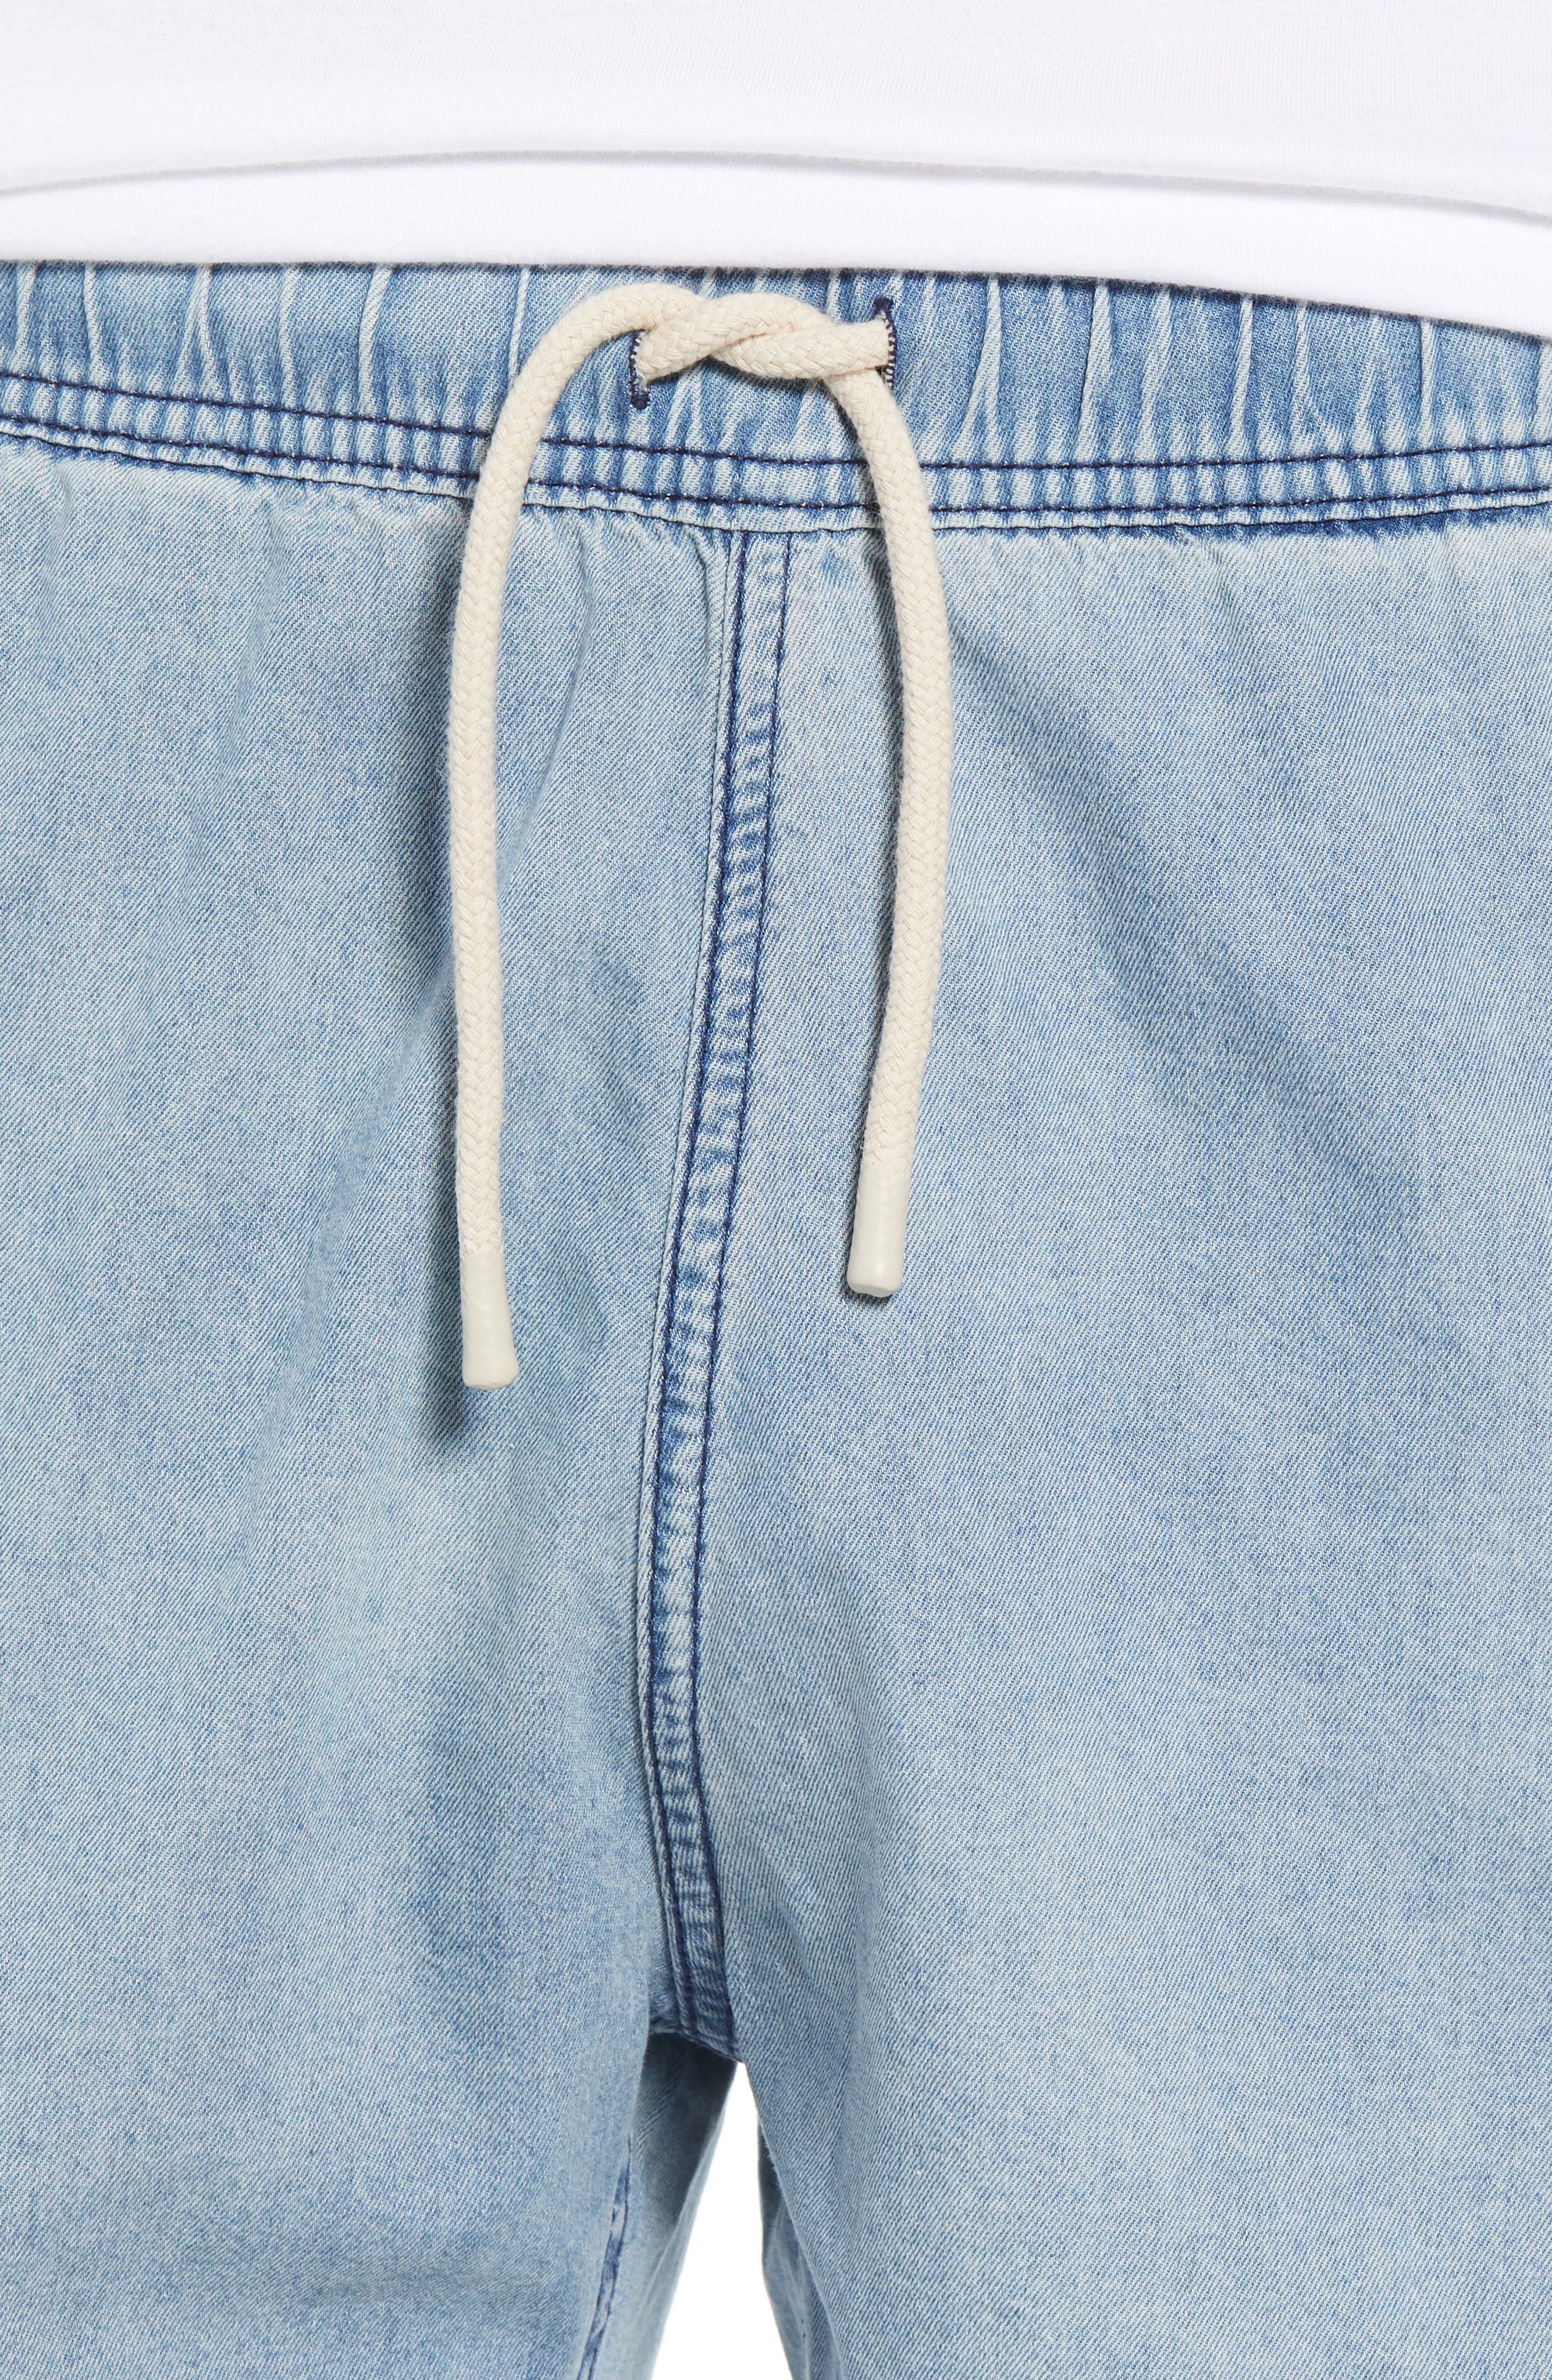 Zephyr Shorts,                             Alternate thumbnail 4, color,                             ARTIC WASH